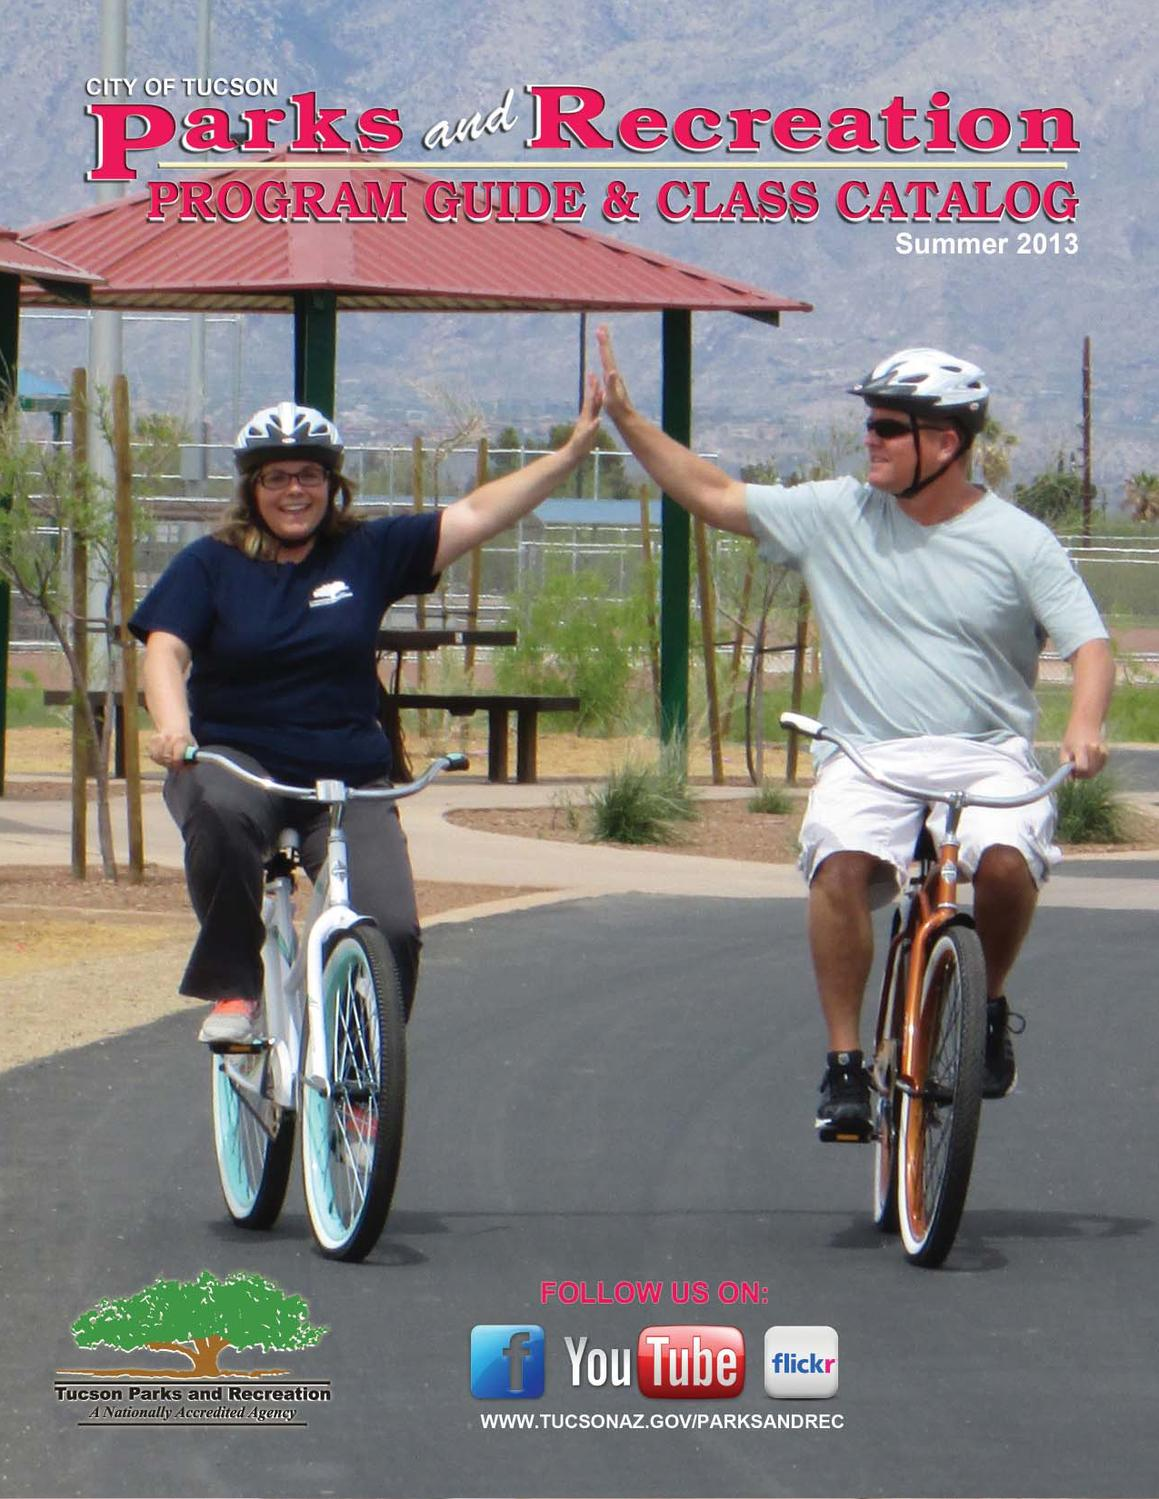 Tucson Parks and Recreation Program Guide and Class Catalog by Tucson Parks and Recreation  Issuu